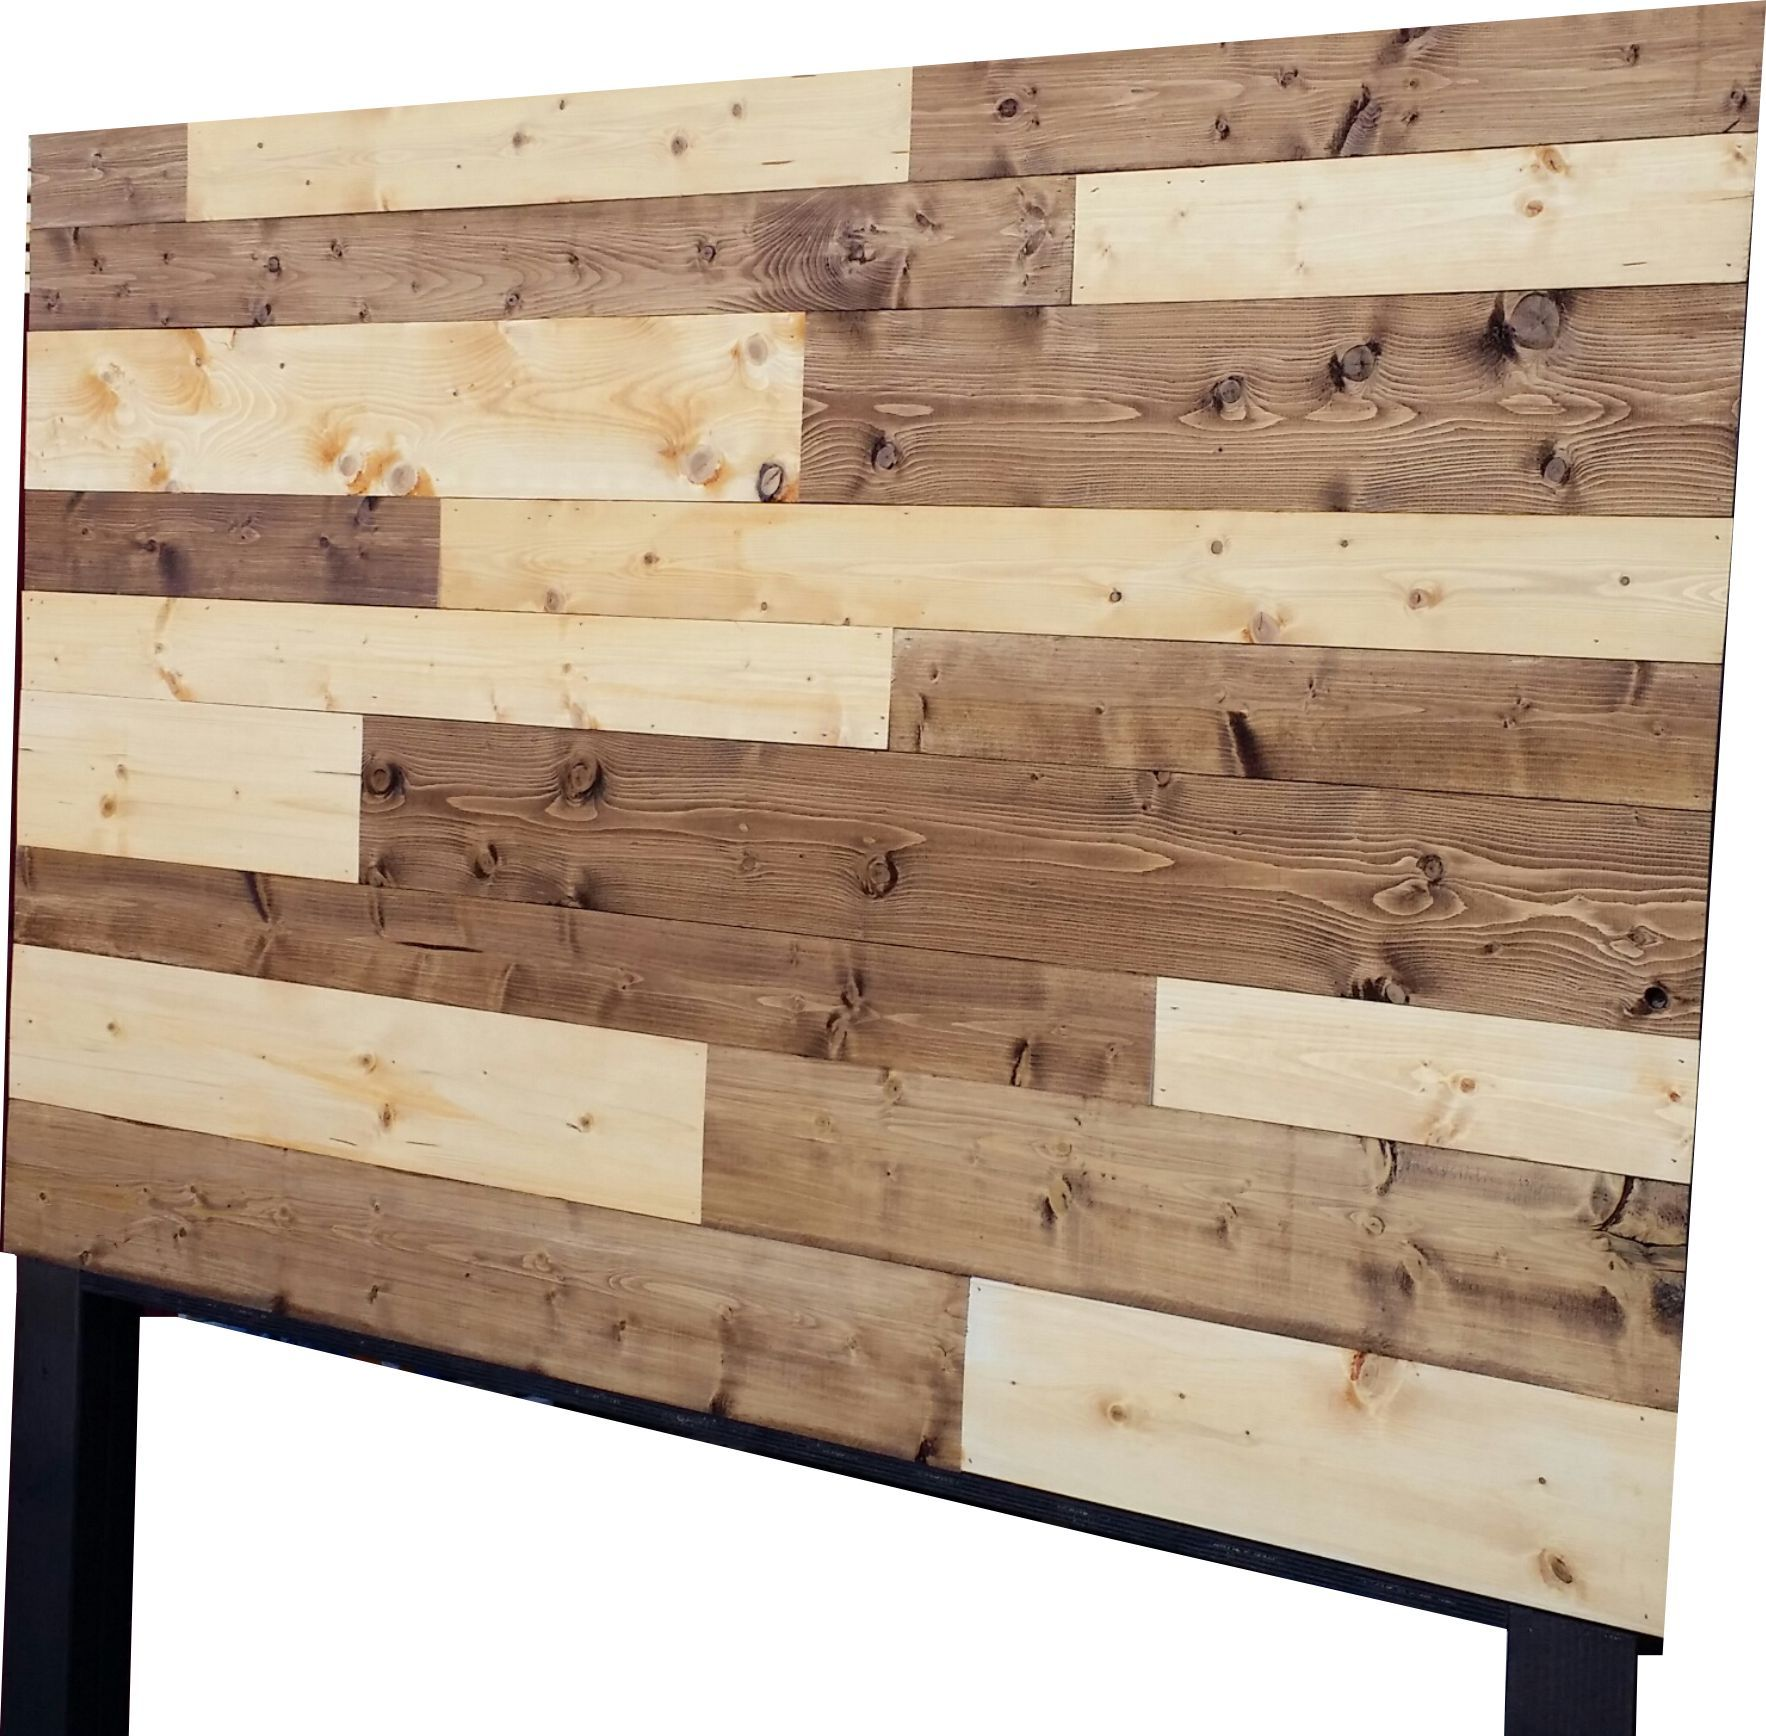 Vintage Headboards 2 Color Stained Plank Wood Headboard Online Ed By Nvy